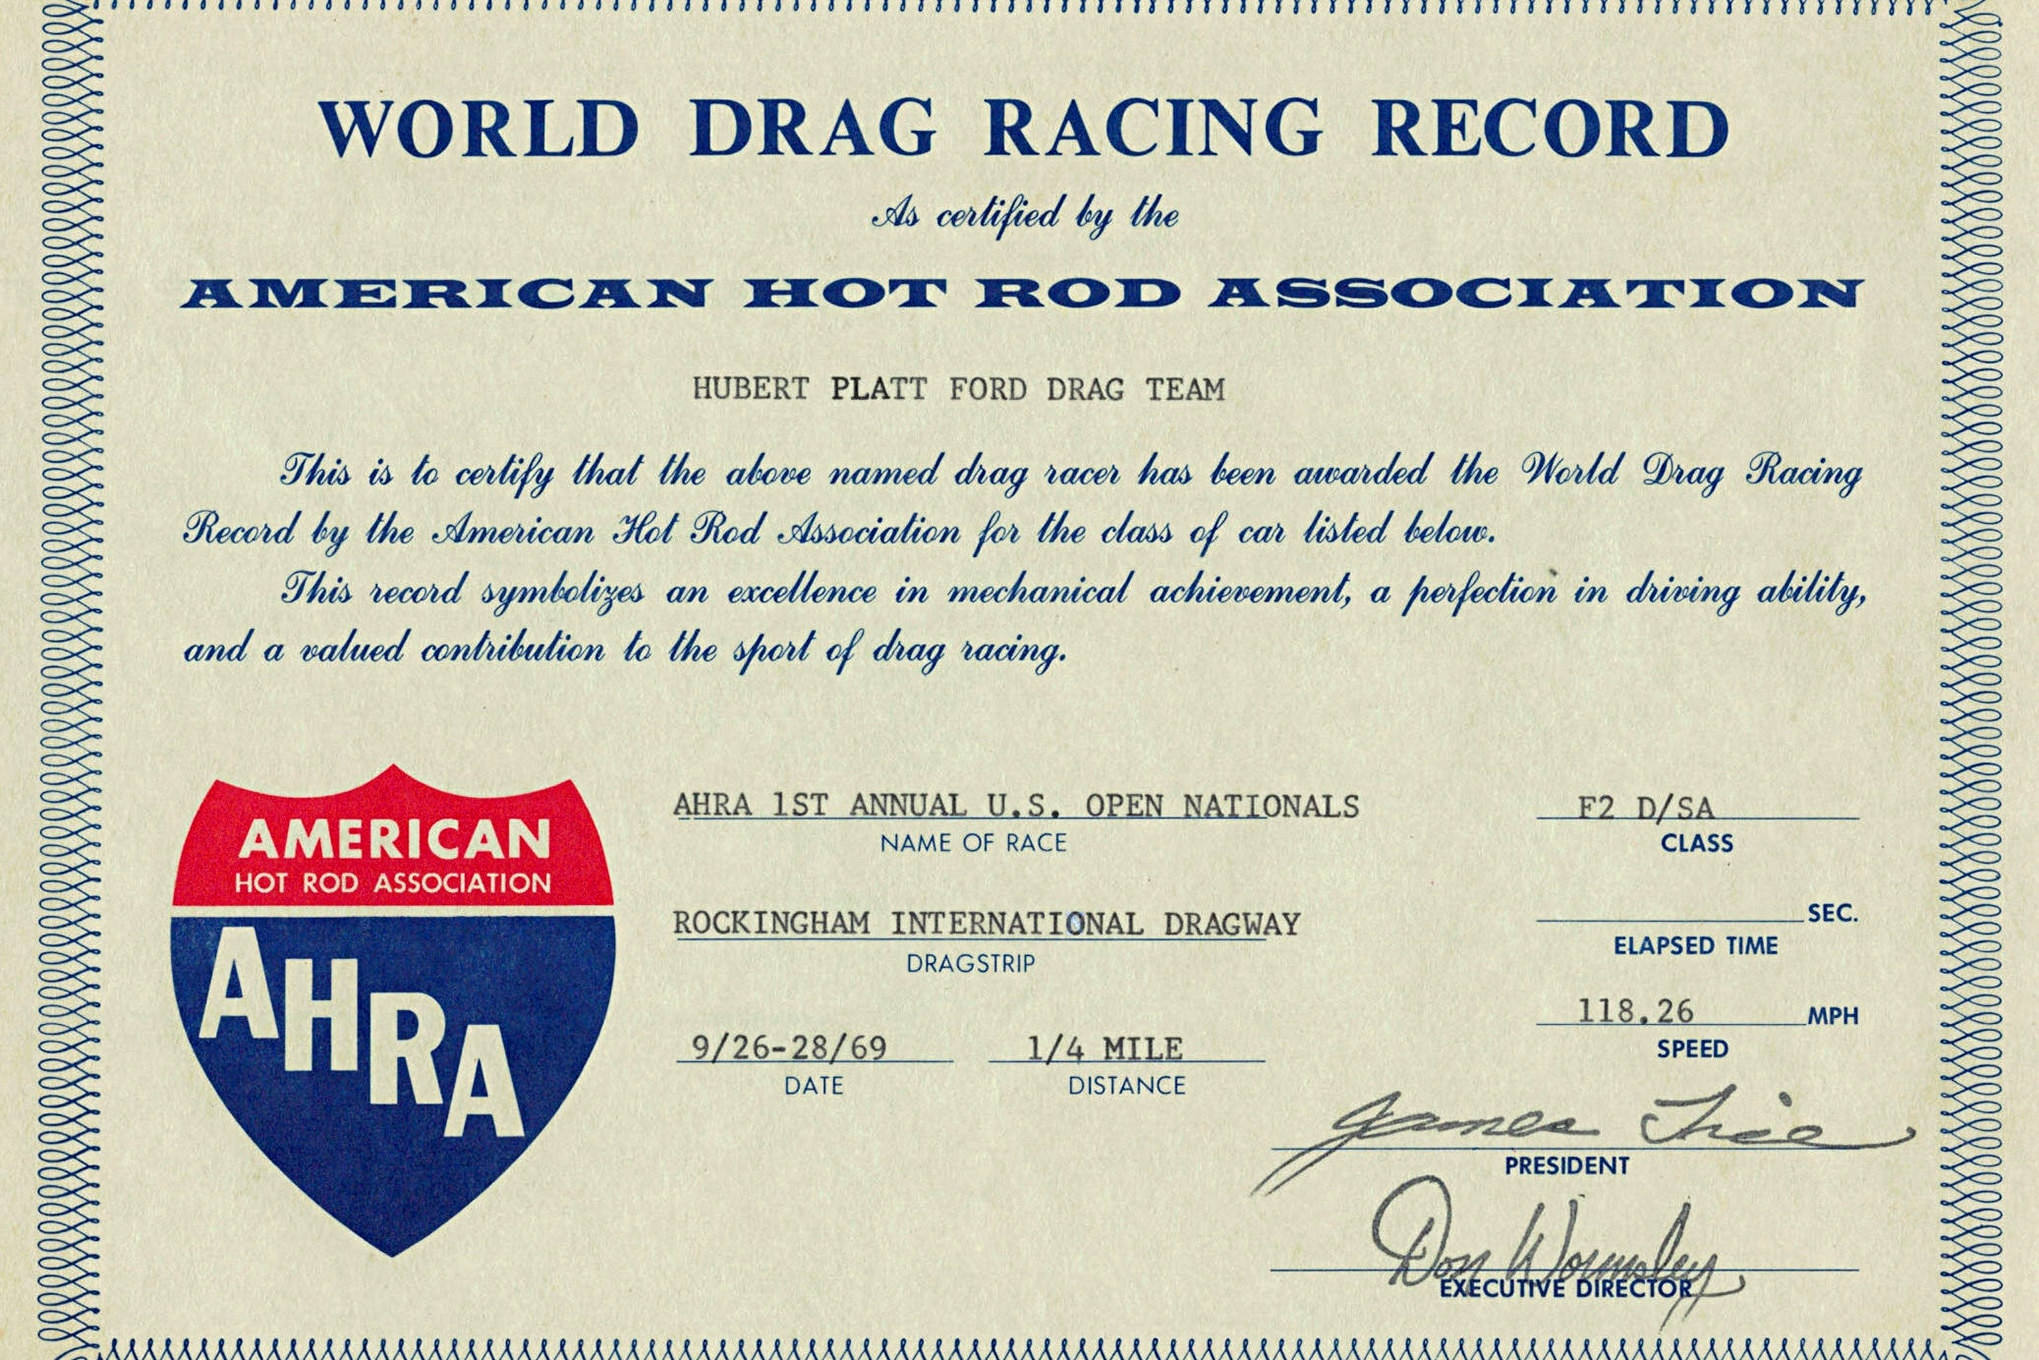 Here is just one of many record certificates collected by Platt and his 428 CJ. This one's for setting the AHRA F2 D/SA mph record of 118.26 in September 1969 at Rockingham Dragway.